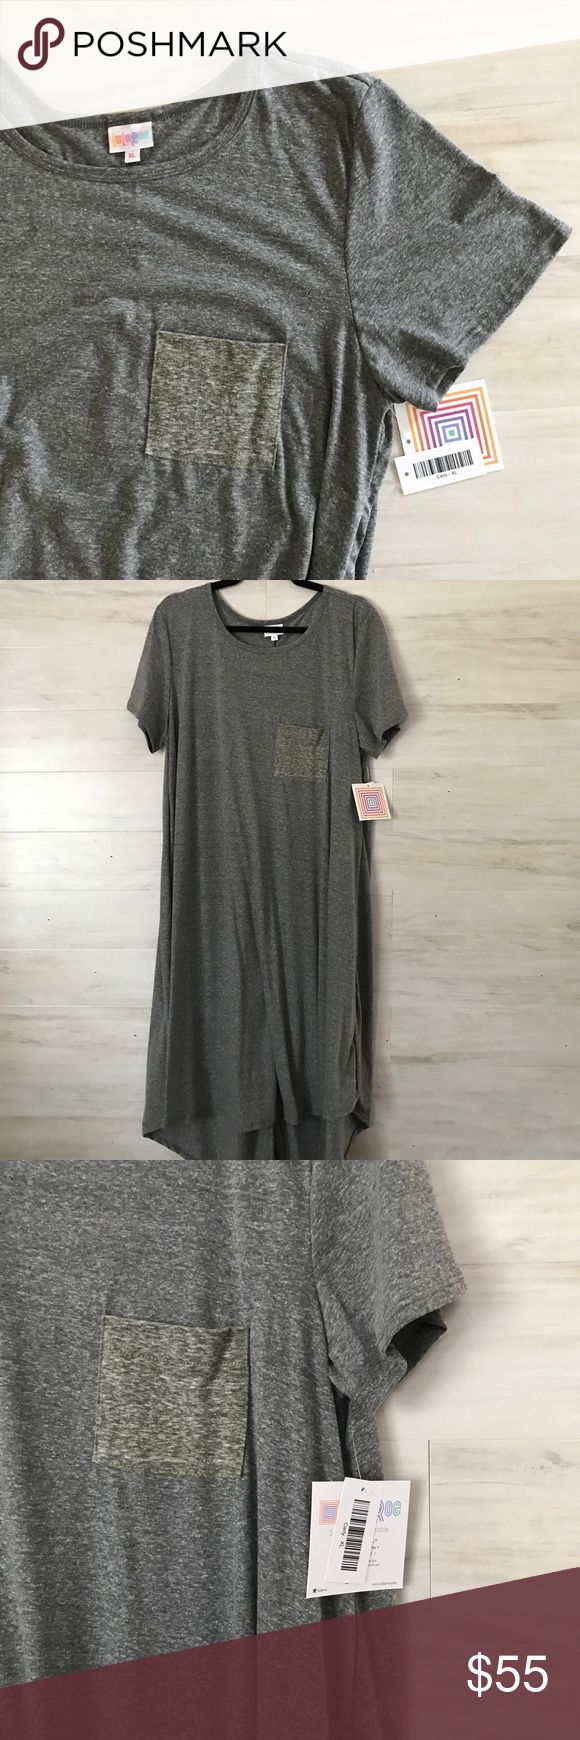 NWT LuLaRoe Carly Dress Heather gray with an olive green chest pocket. Size XL. NWT never worn. Bundle to save or make an offer. LuLaRoe Dresses